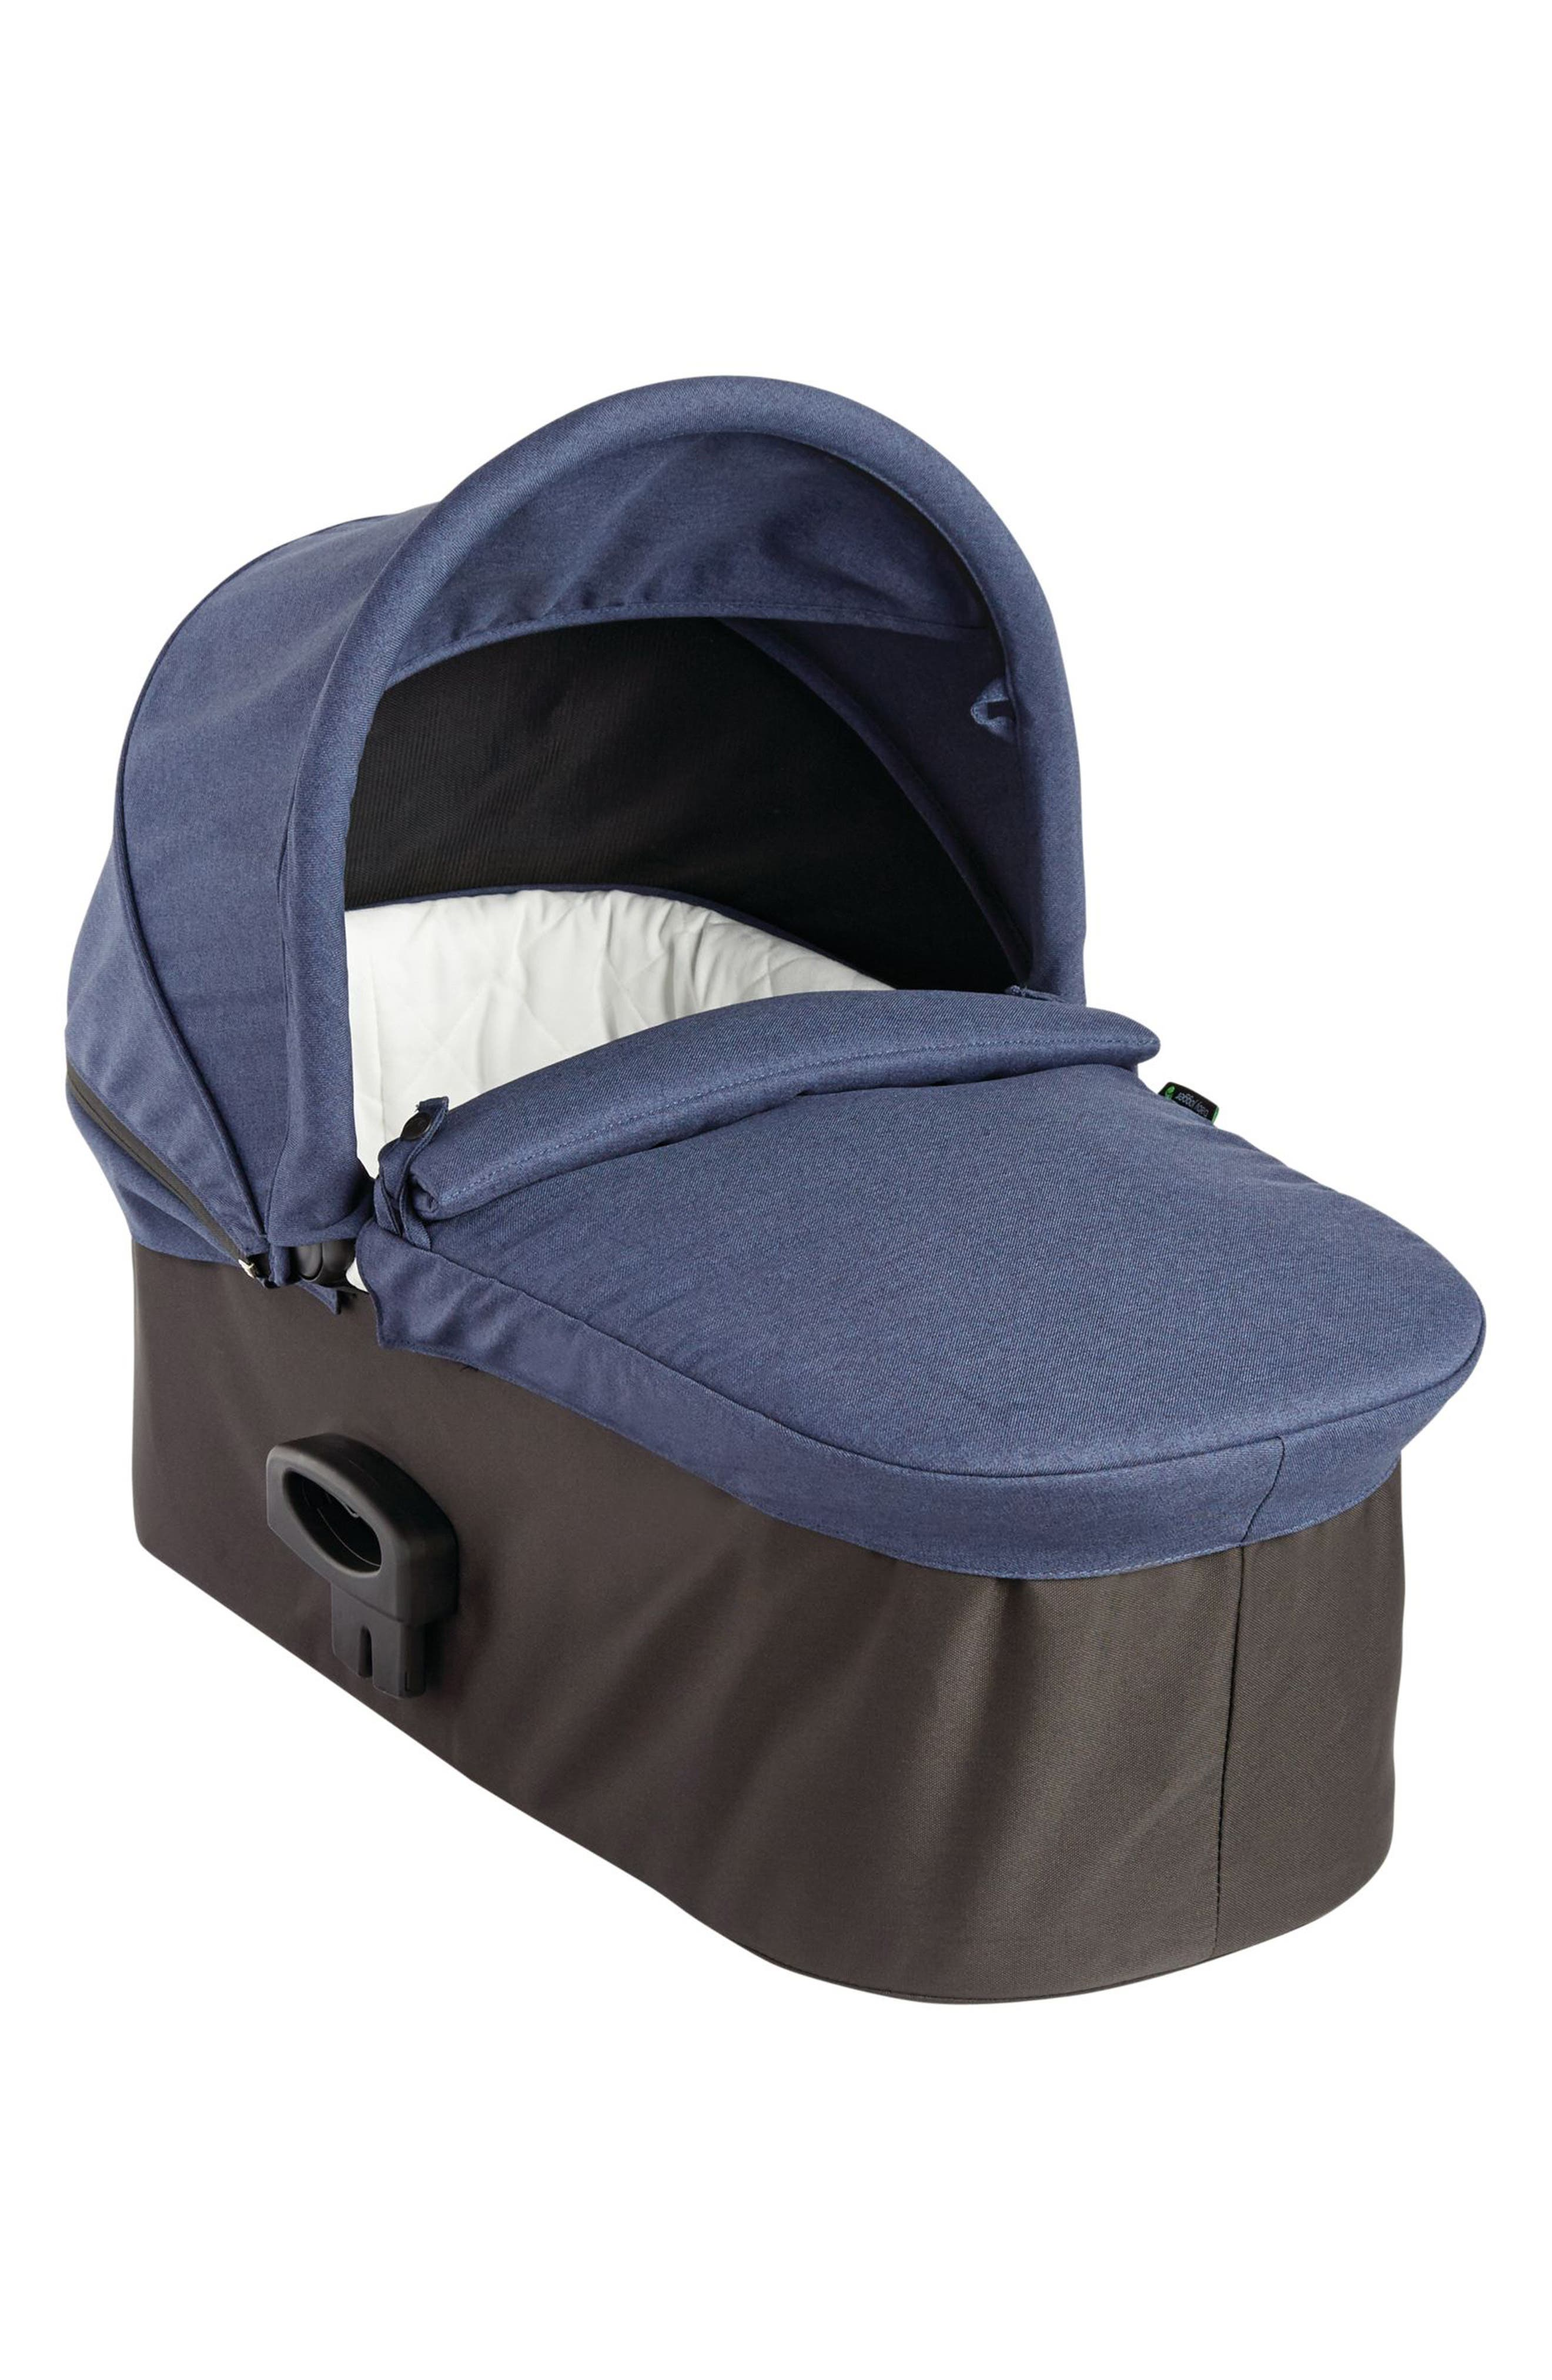 BABY JOGGER Deluxe Pram, Main, color, 400